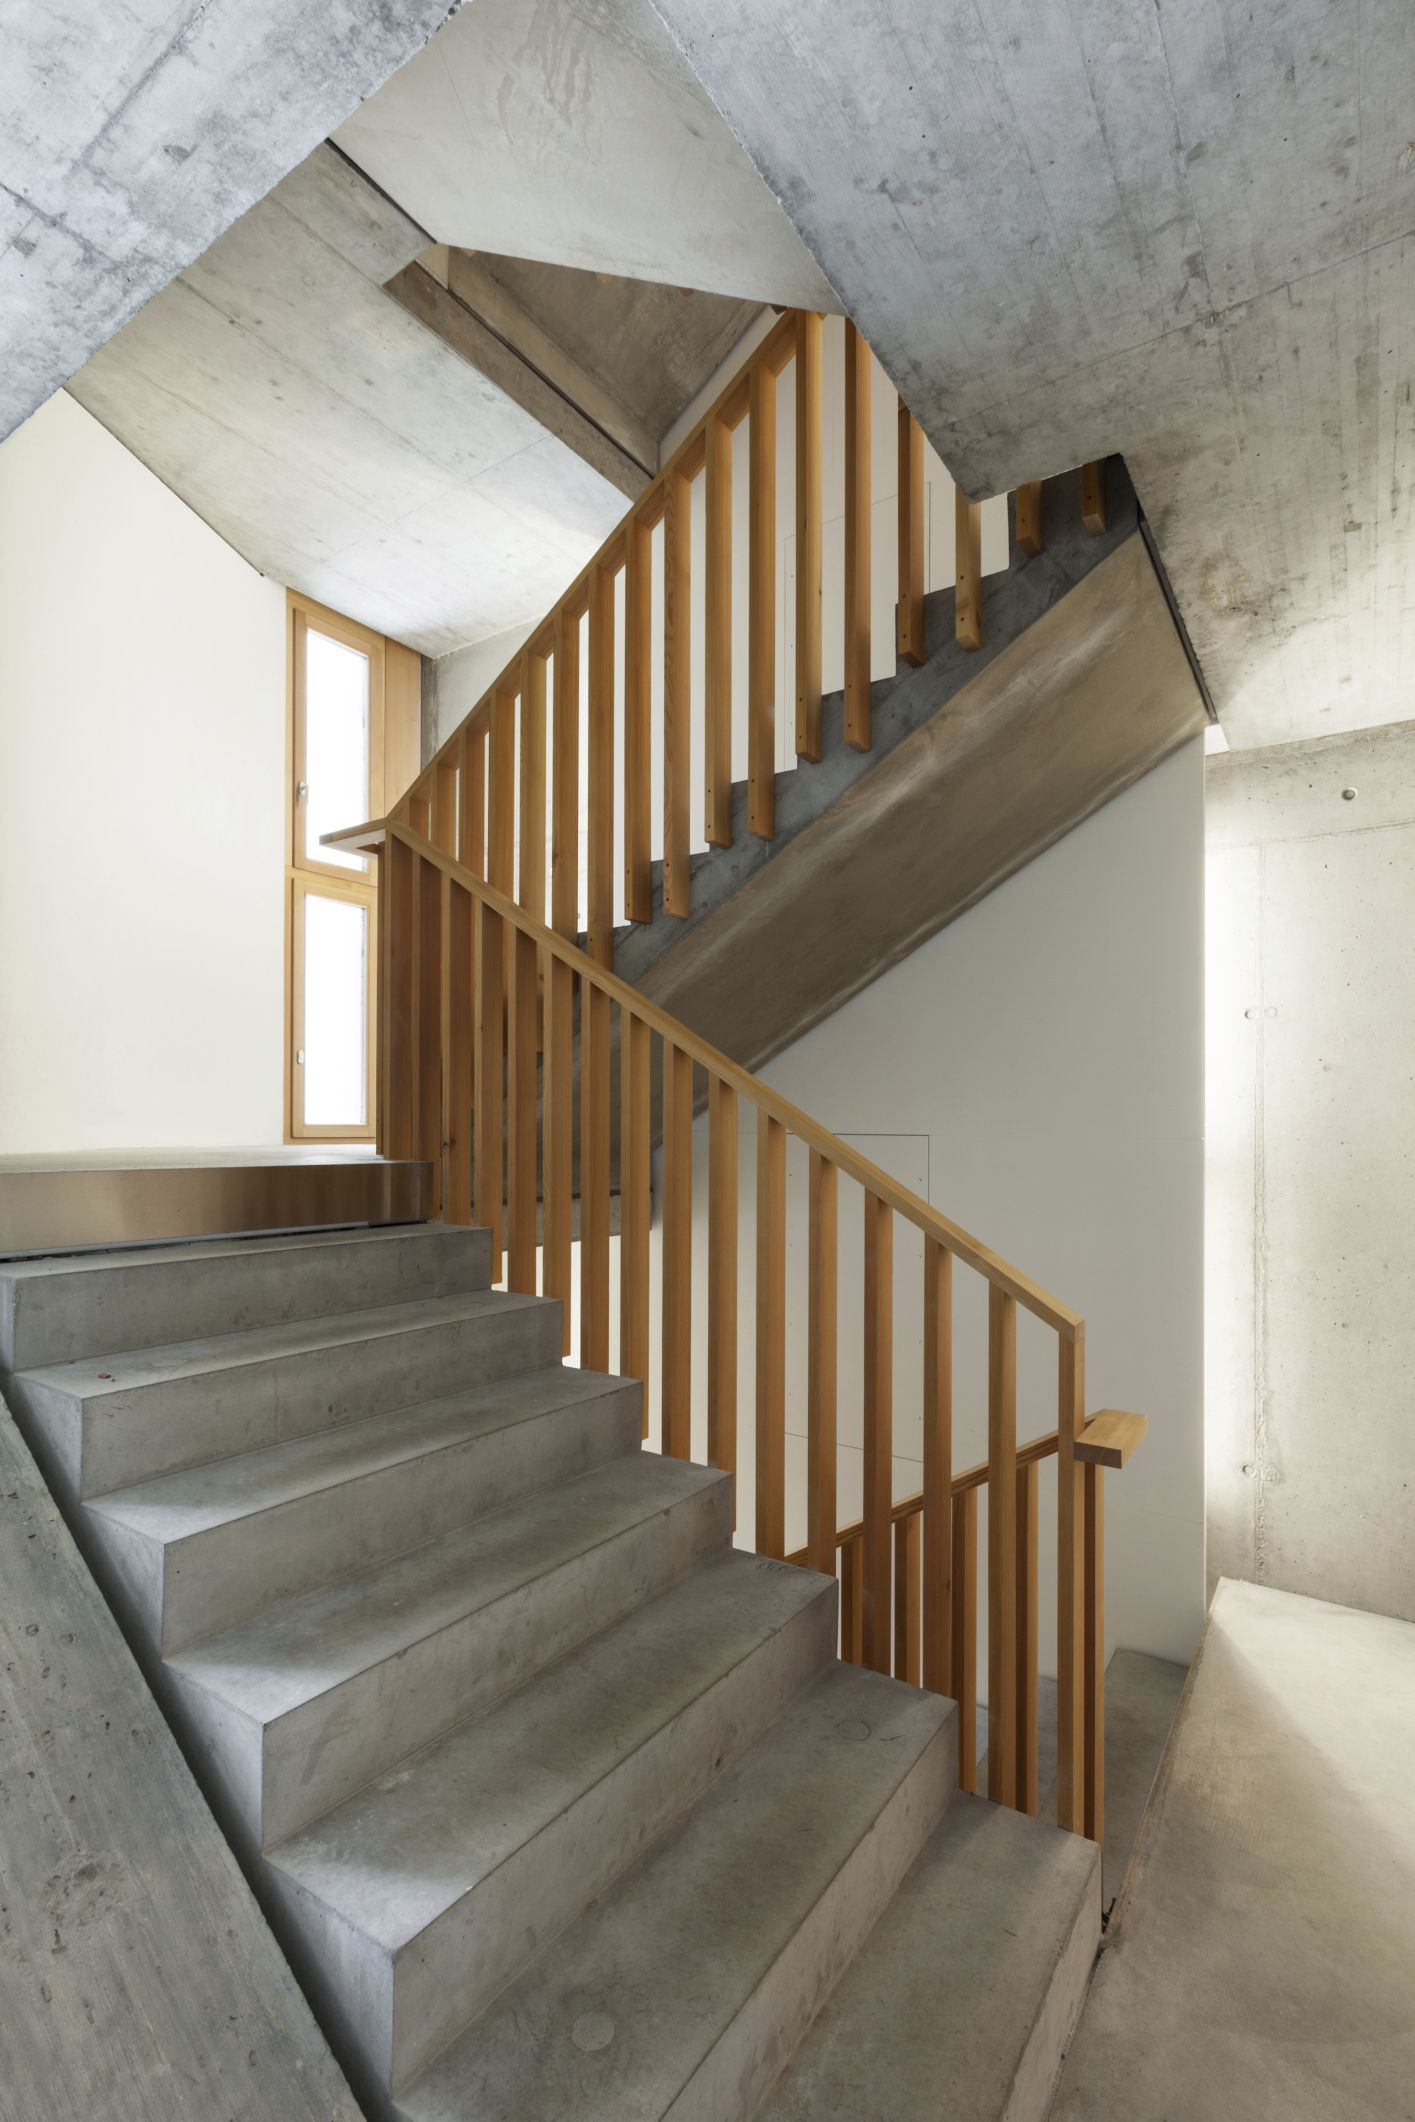 Best 101 Staircase Design Ideas Photos Klatki Schodowe 400 x 300